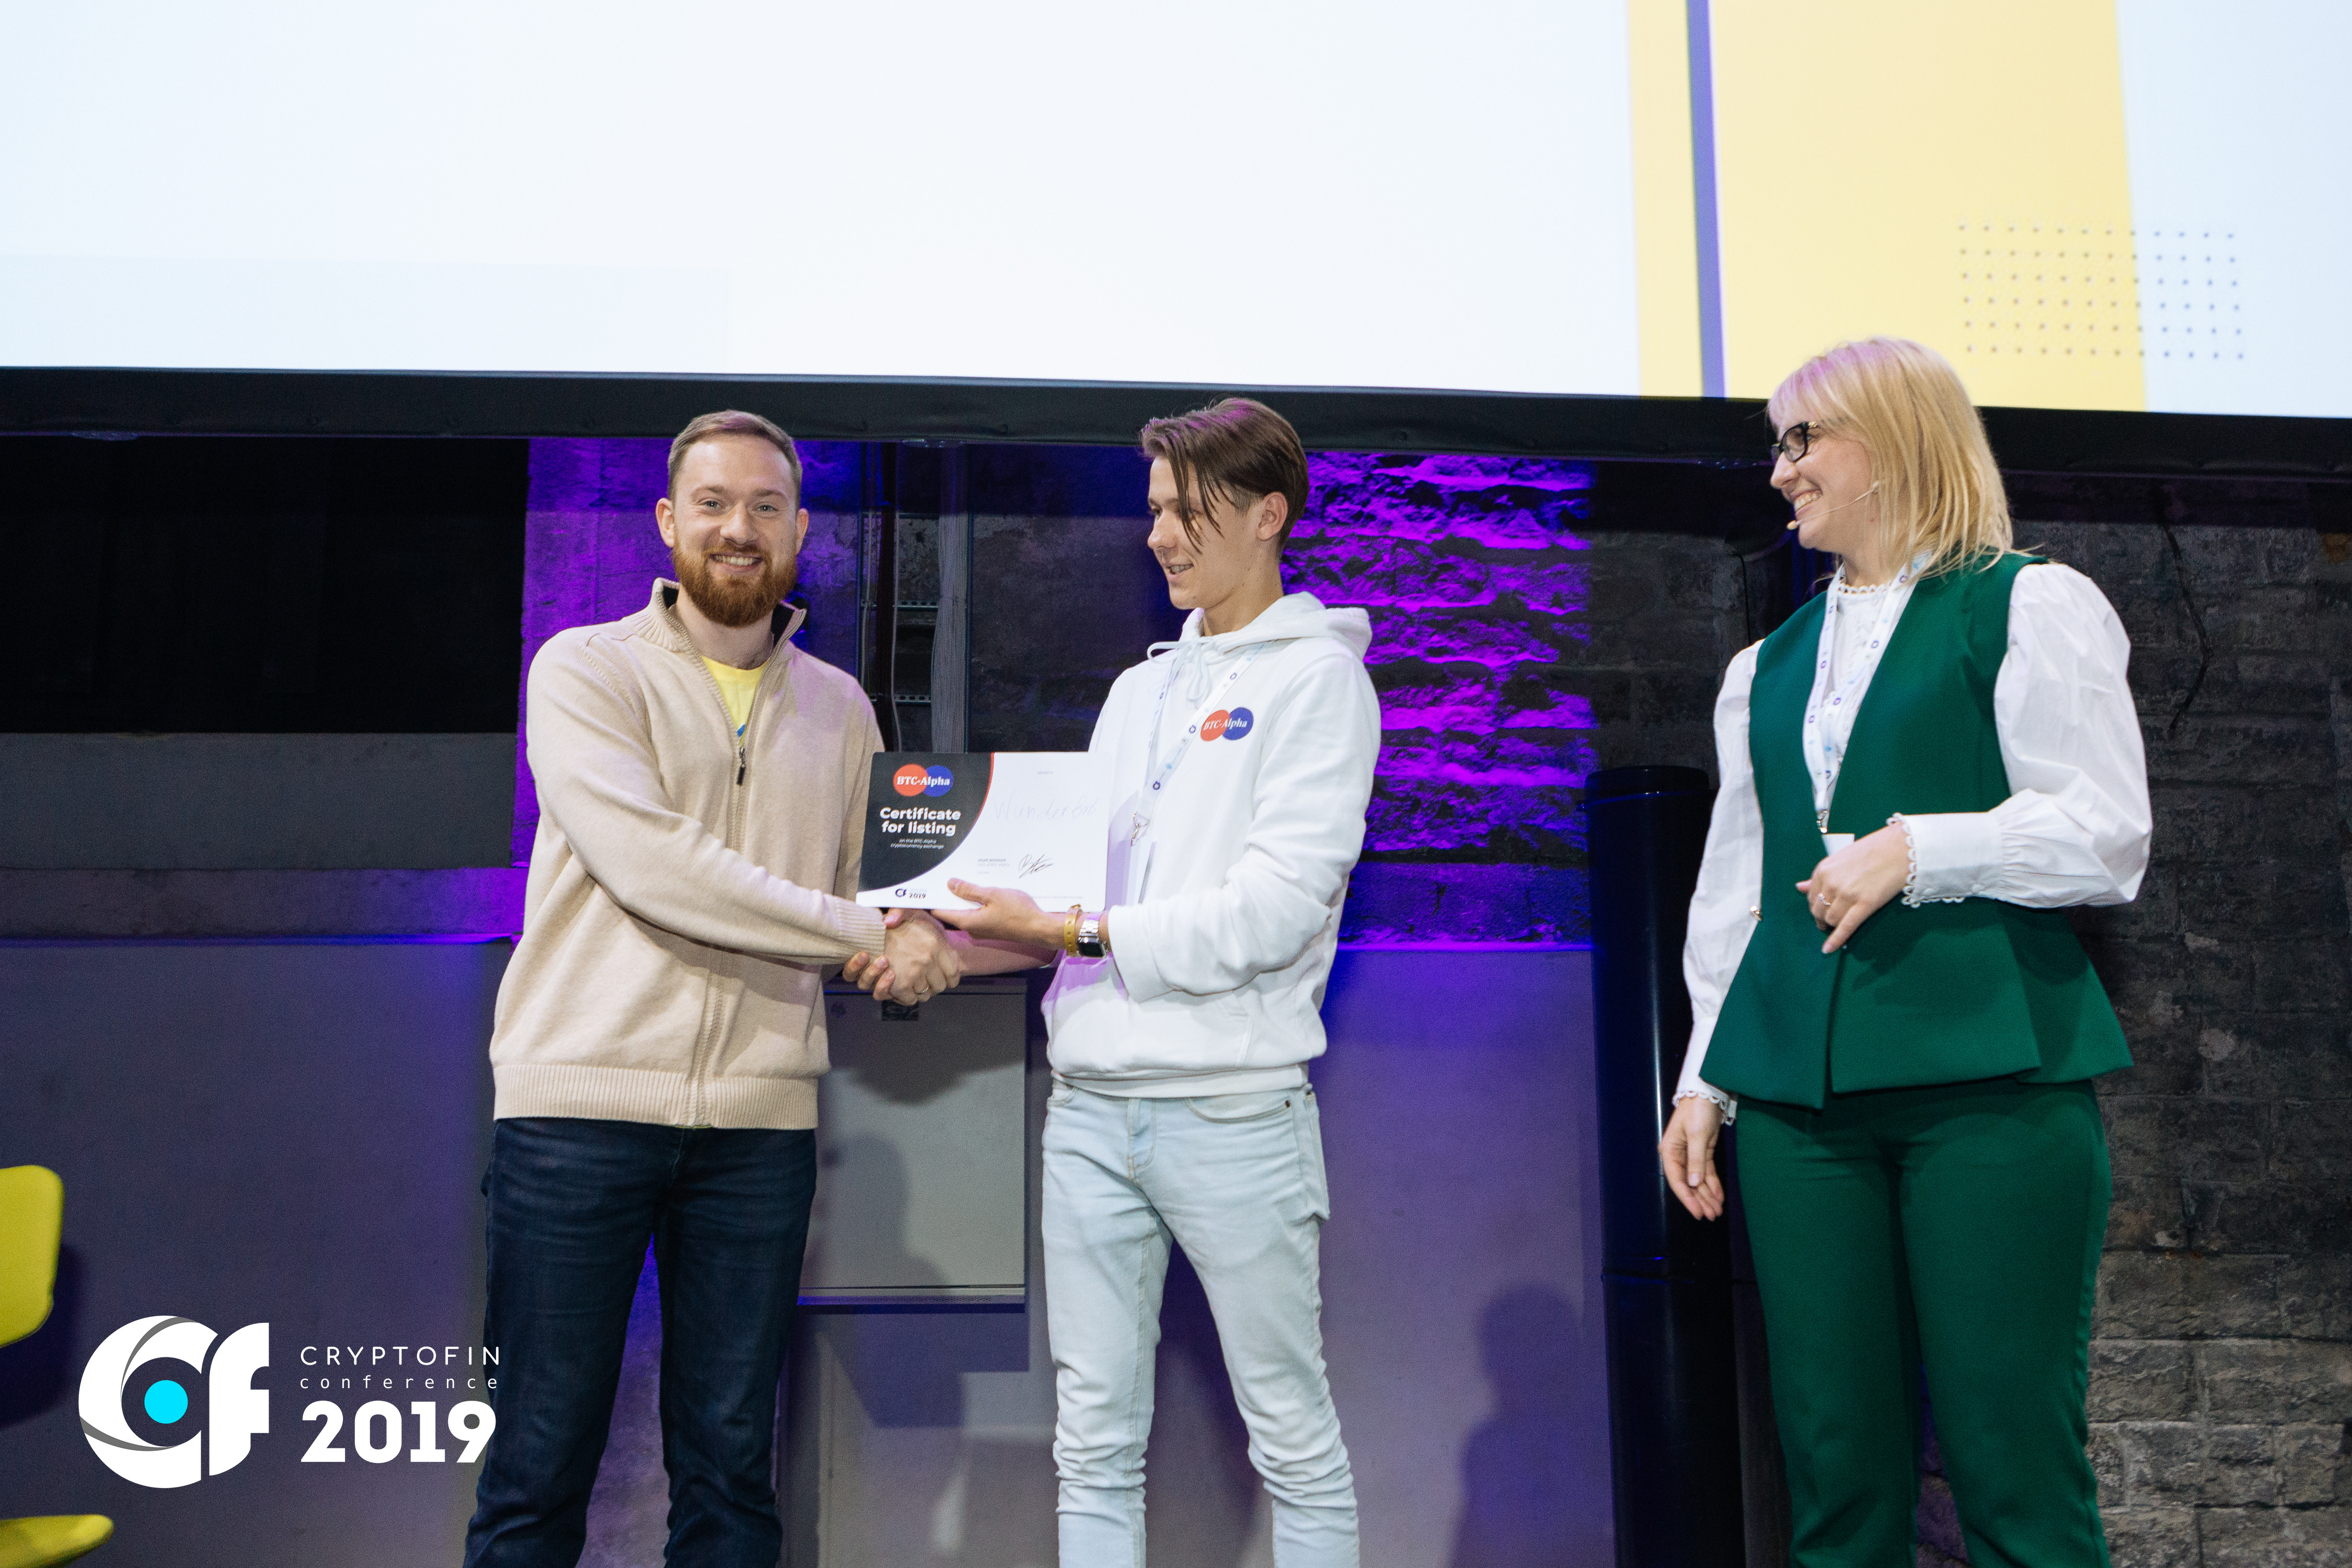 BTC-Alpha became the silver sponsor of the CryptoFin conference in Tallinn